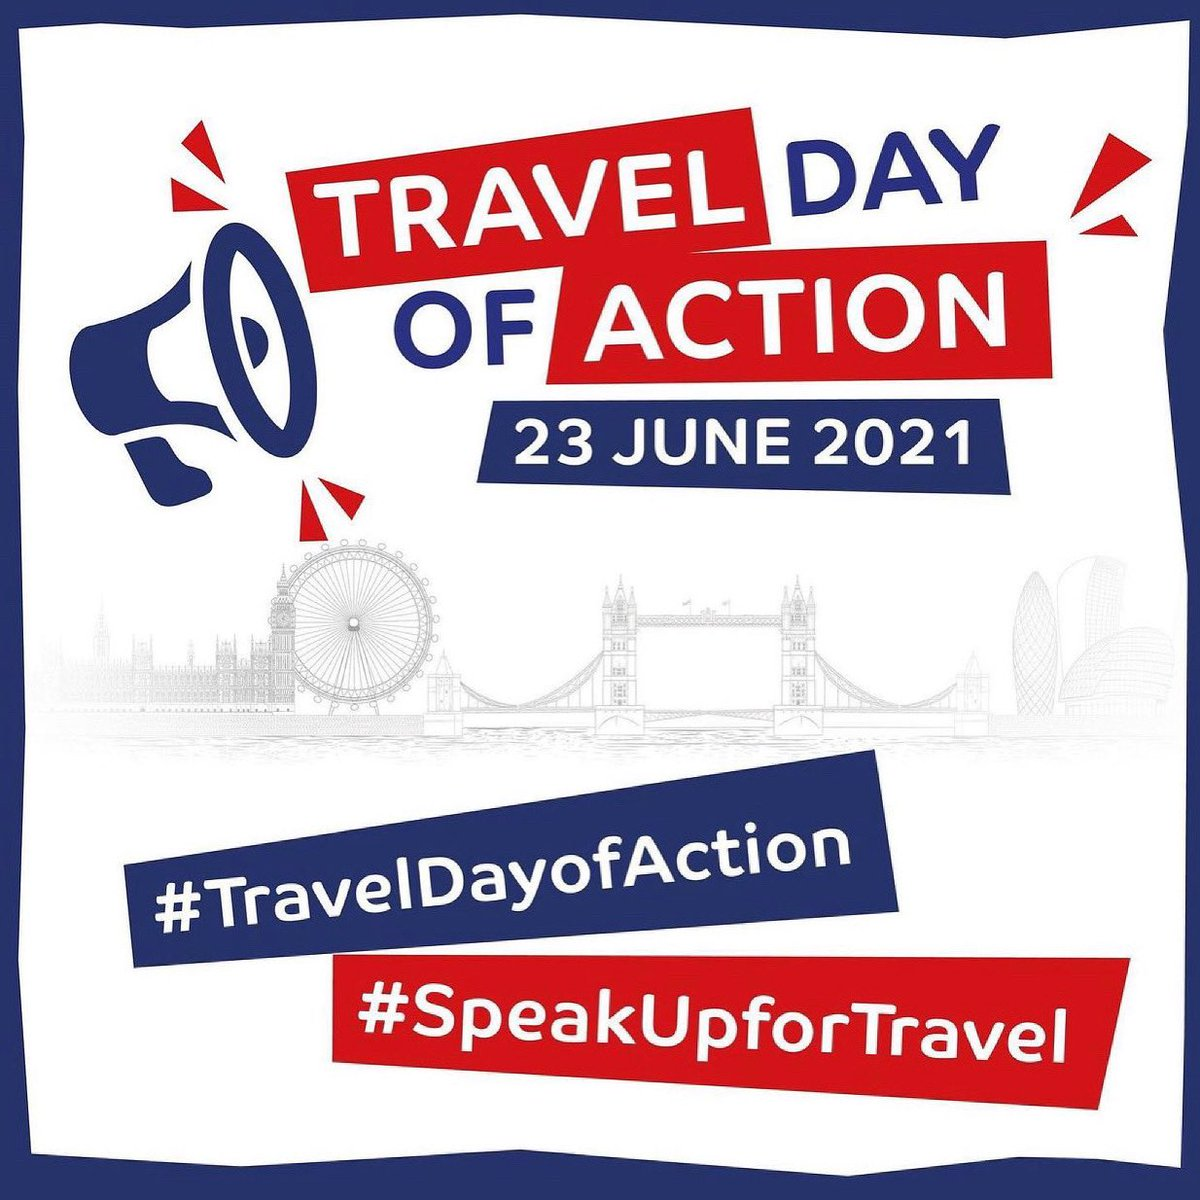 Today we #SpeakUpForTravel  Enough is enough, our voices need to be heard. Too many jobs have already been lost, most businesses have seen zero income for 18 months.  Action needs to be taken, countless businesses and individuals rely on this. #TravelDayOfAction #EnoughIsEnough https://t.co/1ZdVCTbokH